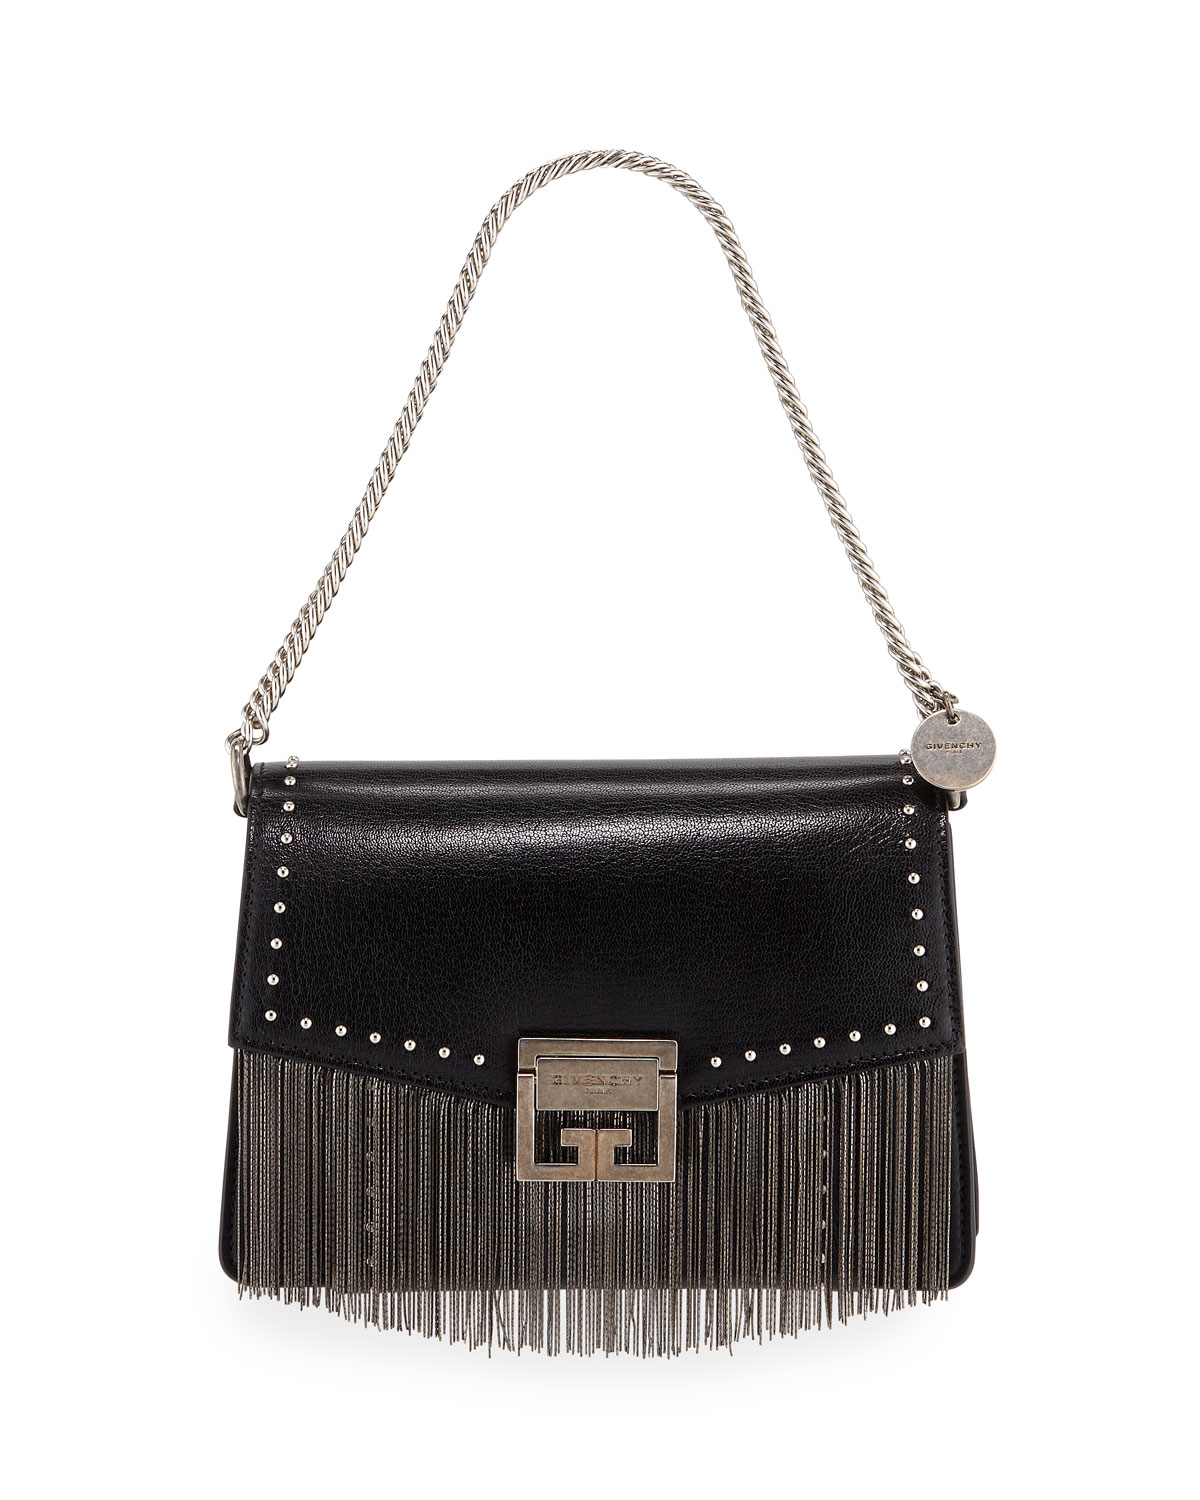 90f5de107f47 Givenchy GV3 Small Fringed Leather Crossbody Bag